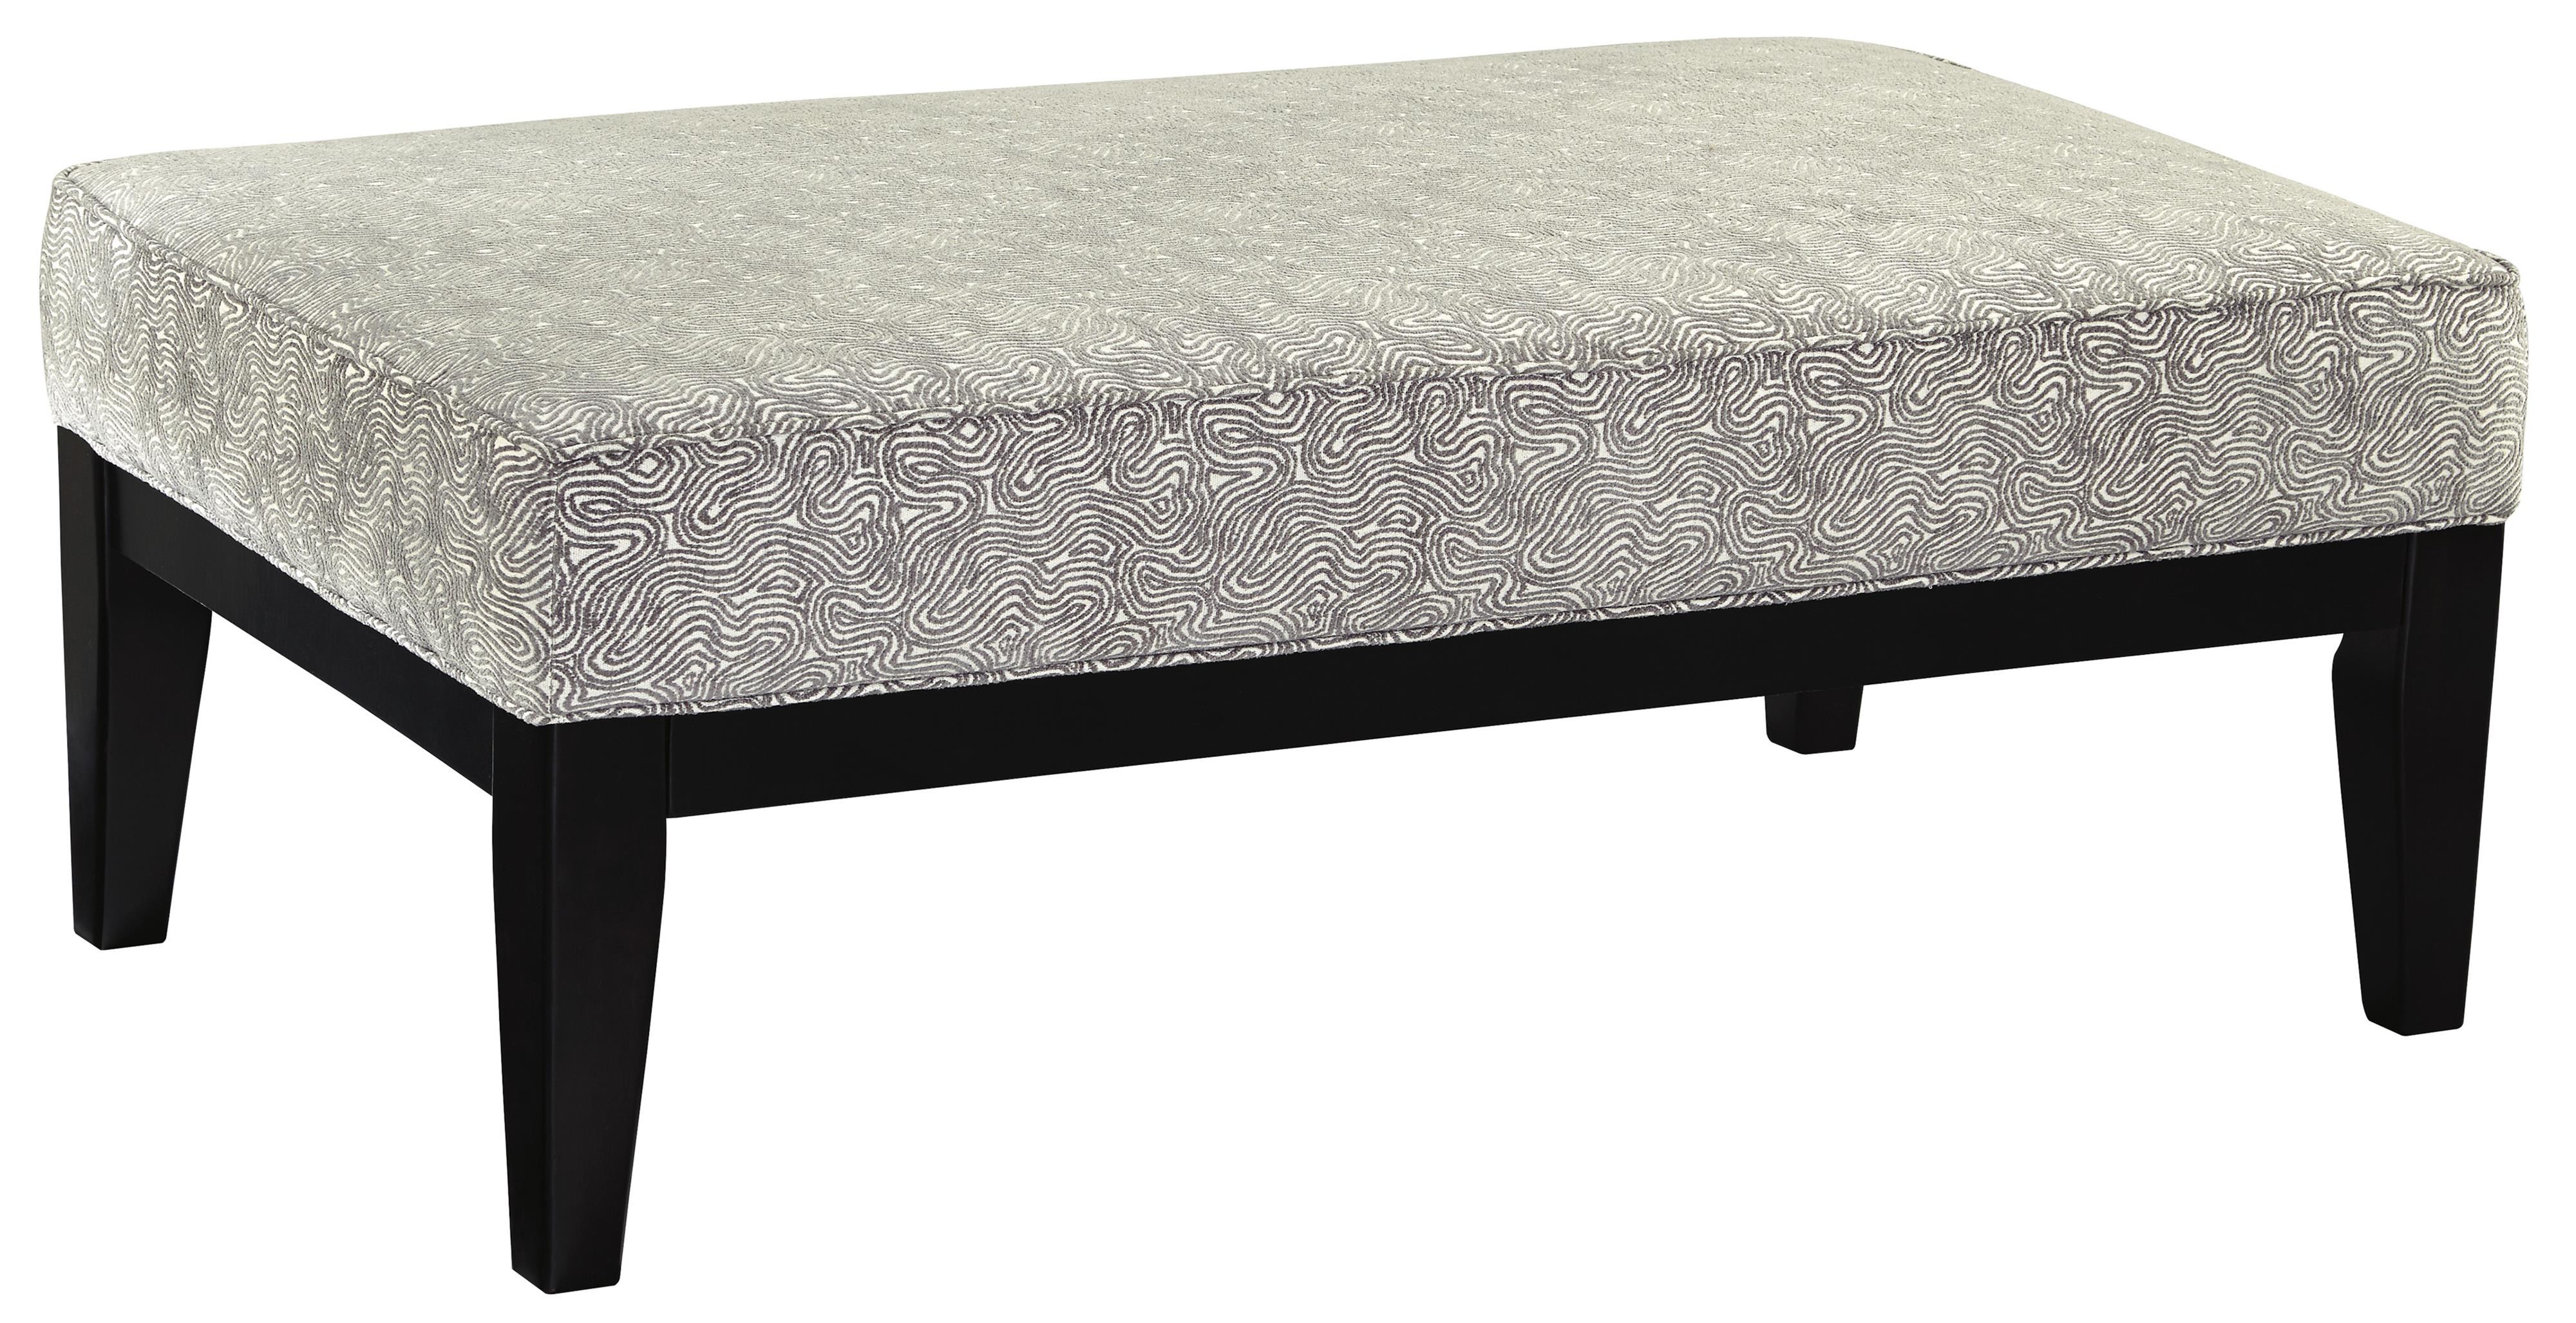 Benchcraft Brielyn Oversized Accent Ottoman - Item Number: 6140208